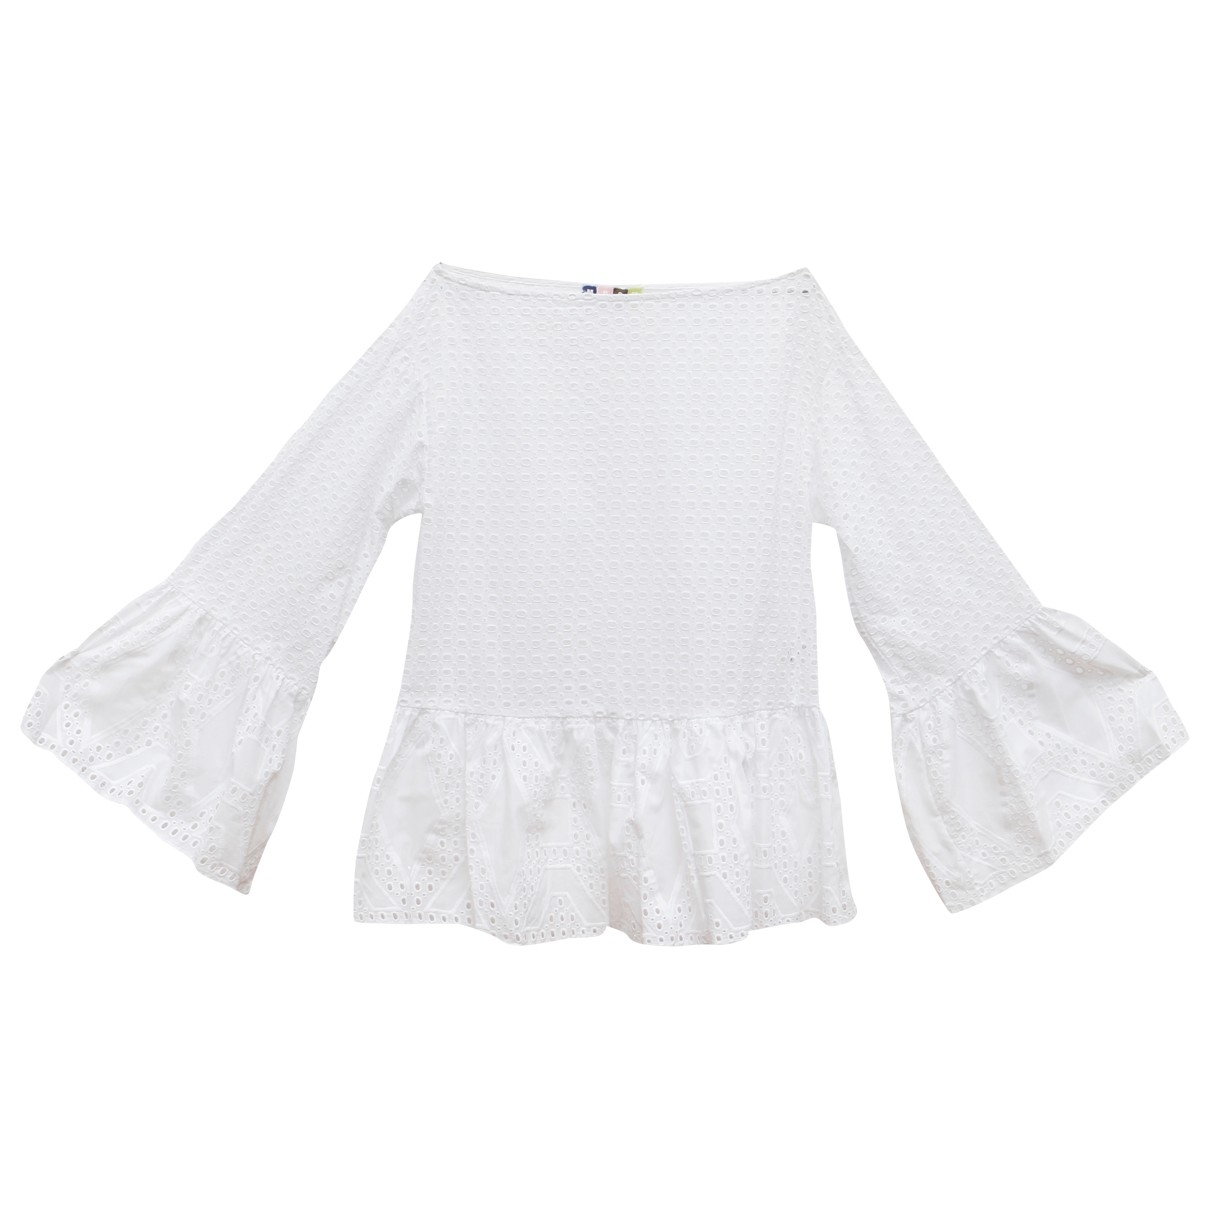 Msgm \N White Cotton  top for Women 40 IT